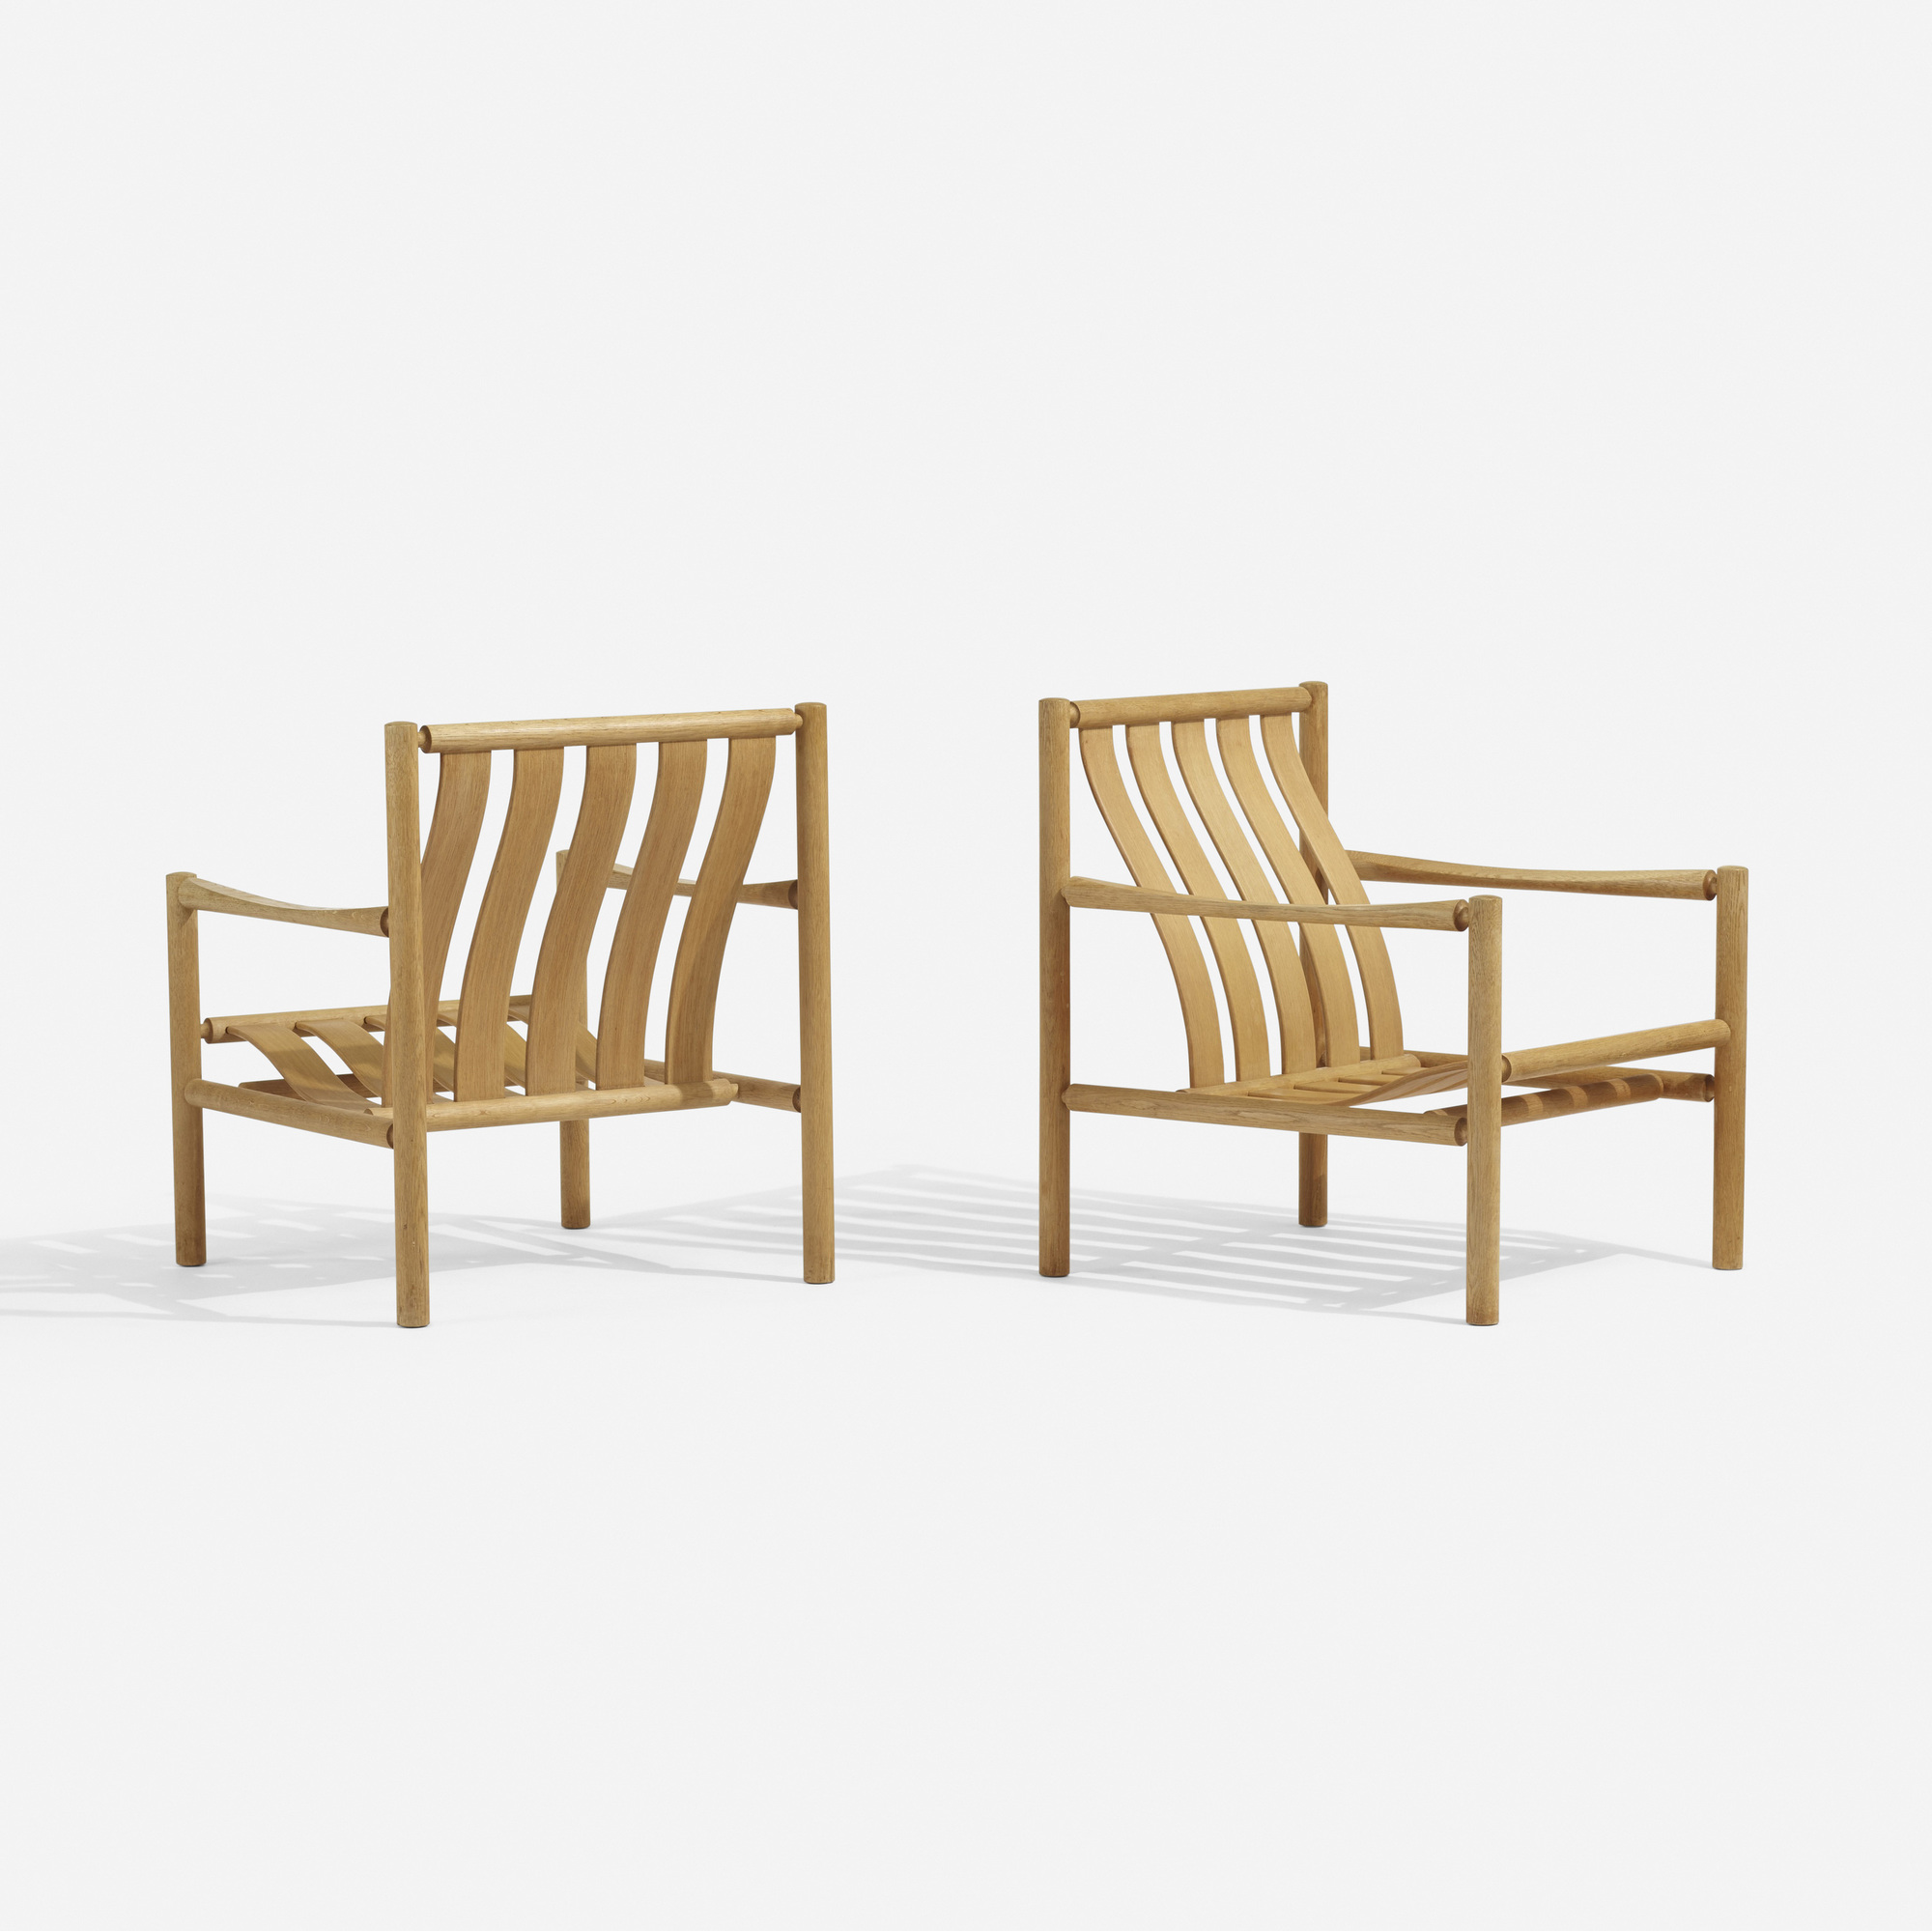 189: Jorgen Nilsson / lounge chairs, pair (2 of 4)